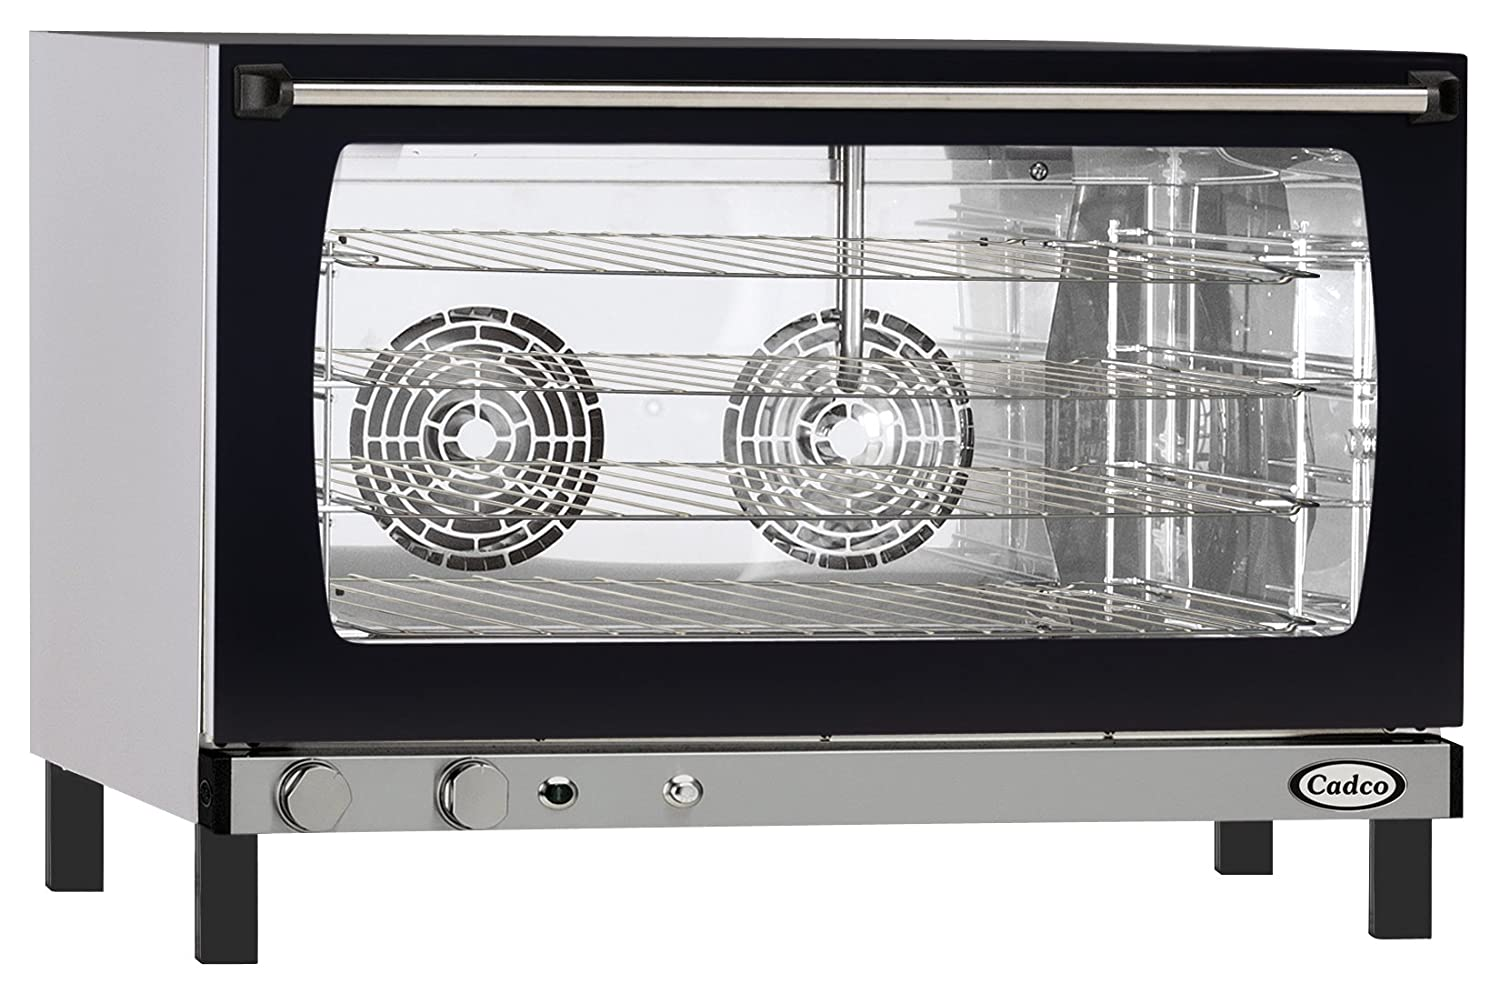 Amazon.com: Cadco XAF-193 Full Size Convection Oven with Manual Controls  and Humidity, 208-240-Volt/5600-Watt, Stainless/Black: Convection  Countertop Ovens: ...